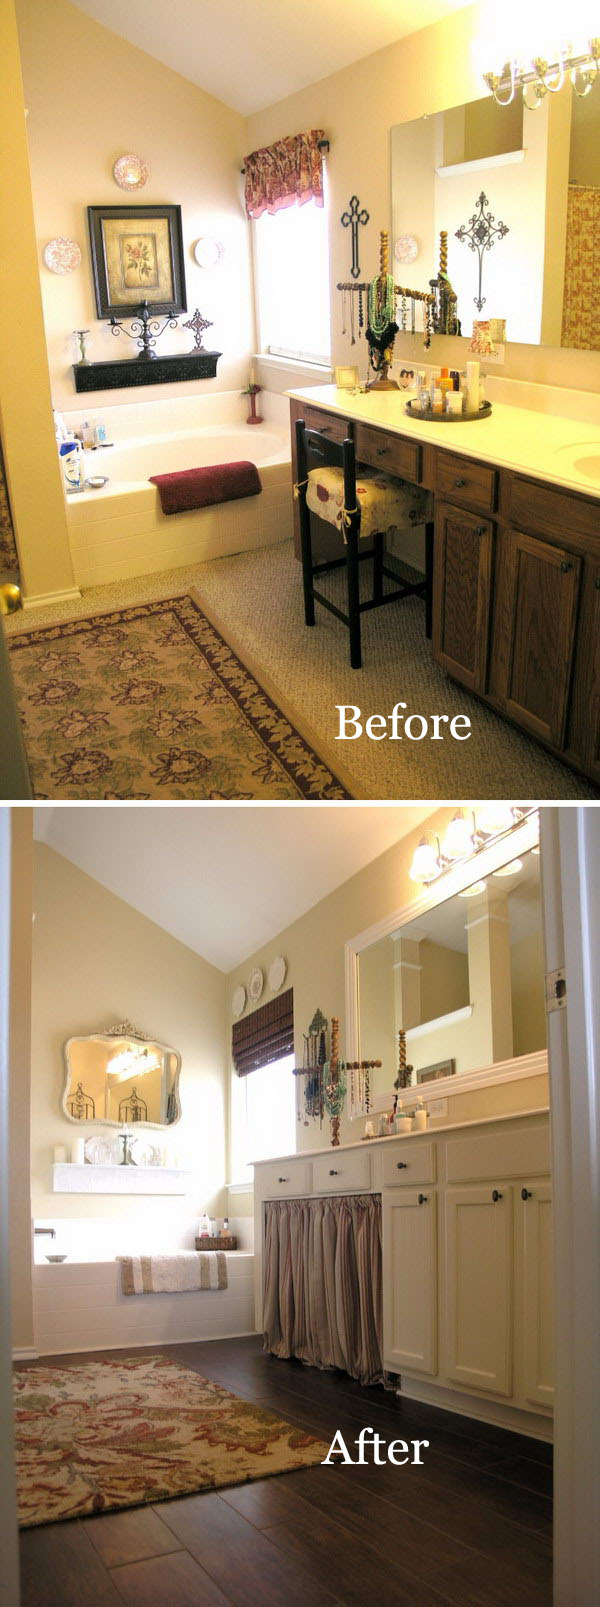 Before And After Awesome Bathroom Makeovers Hative - Master bathroom remodel before and after